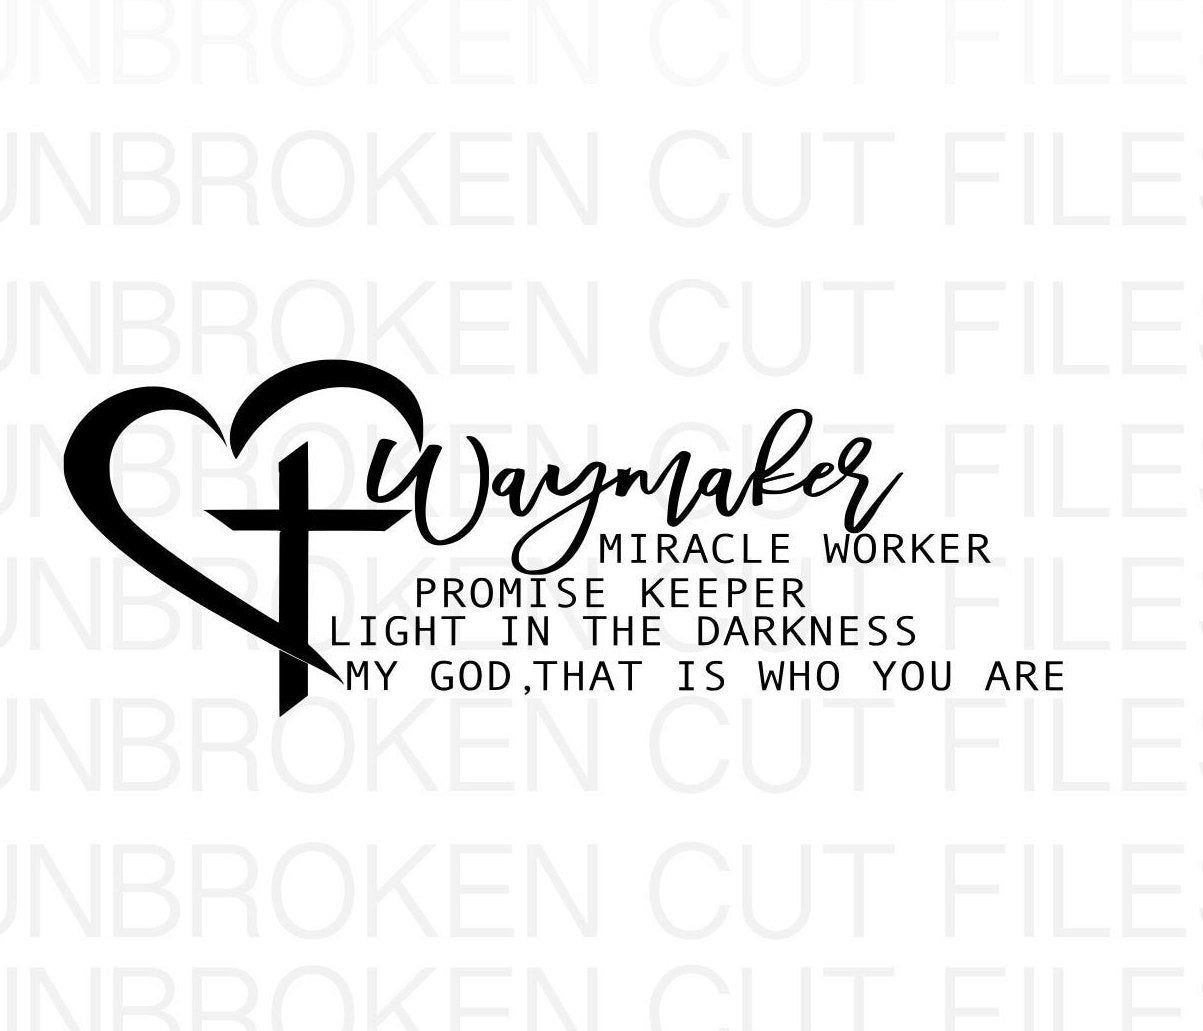 Waymaker Svg Miracle Worker Promise Keeper My God Etsy In 2020 Christian Svg Silk Screen Printing Diy Svg